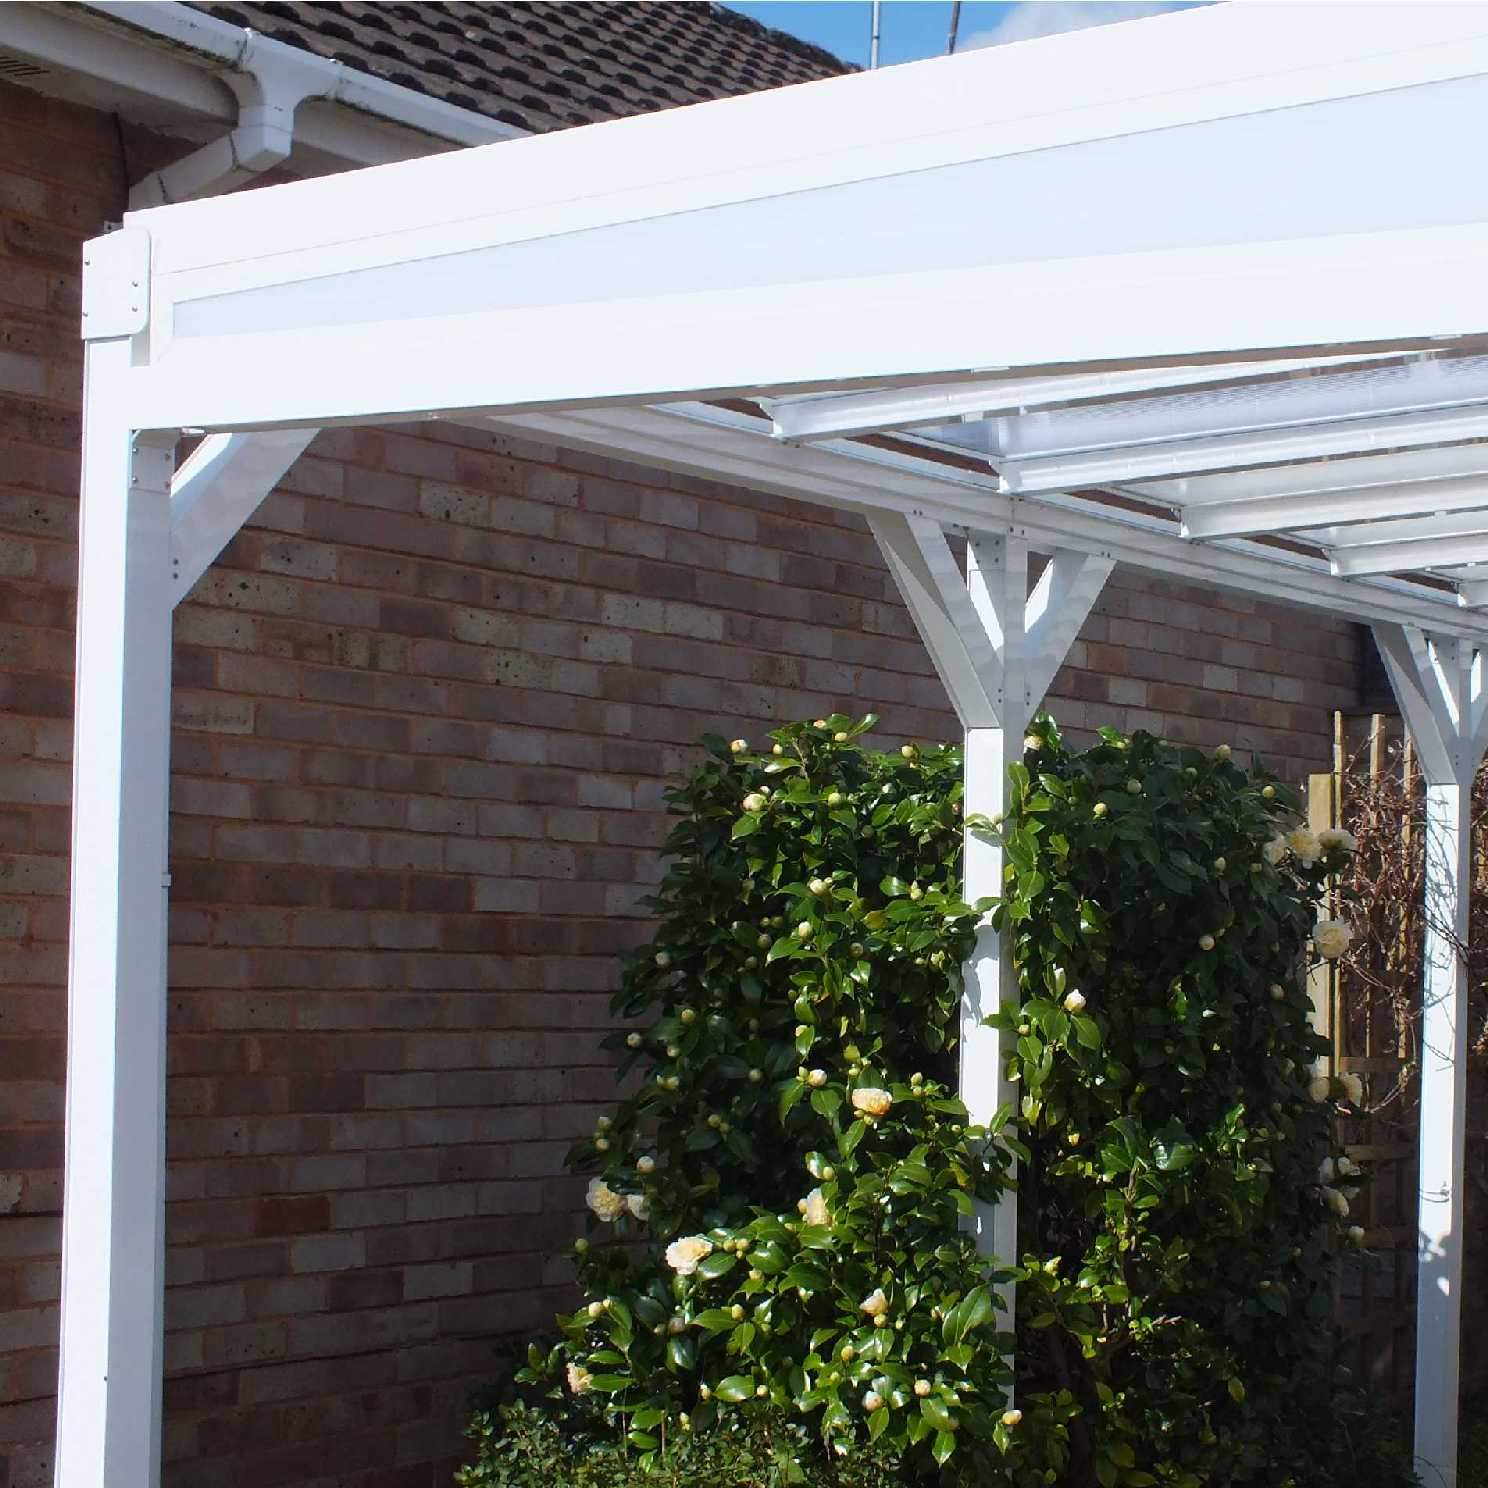 Omega Smart White Lean-To Canopy with 16mm Polycarbonate Glazing - 6.3m (W) x 1.5m (P), (4) Supporting Posts from Omega Build